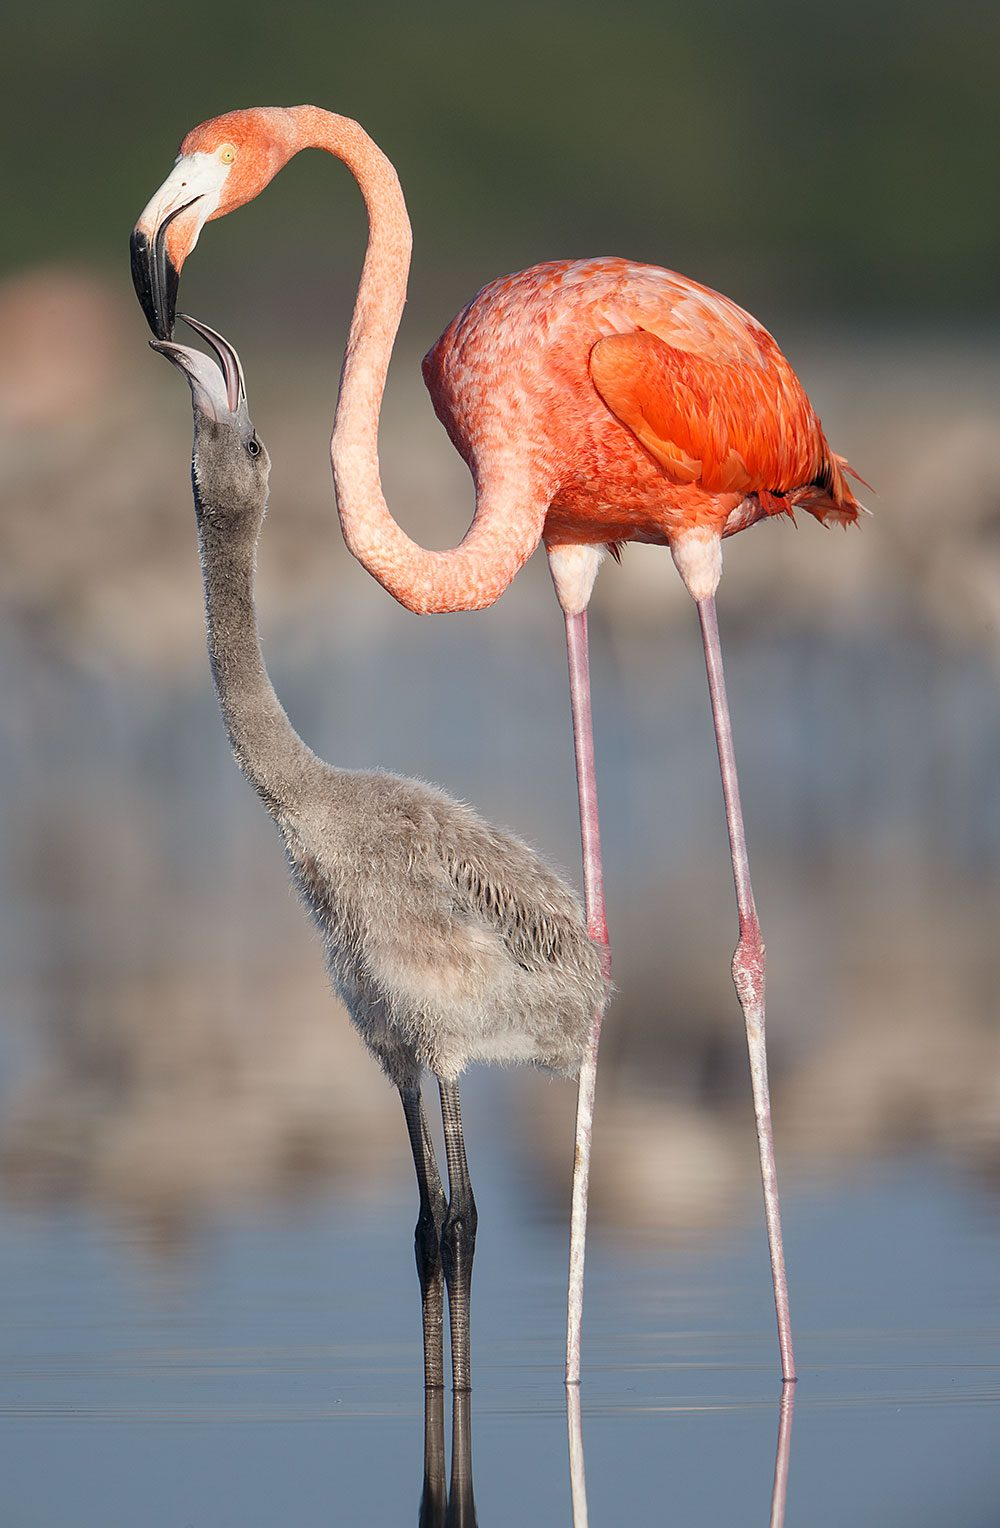 An adult flamingo streams protein-rich crop-milk into its chick's bill.